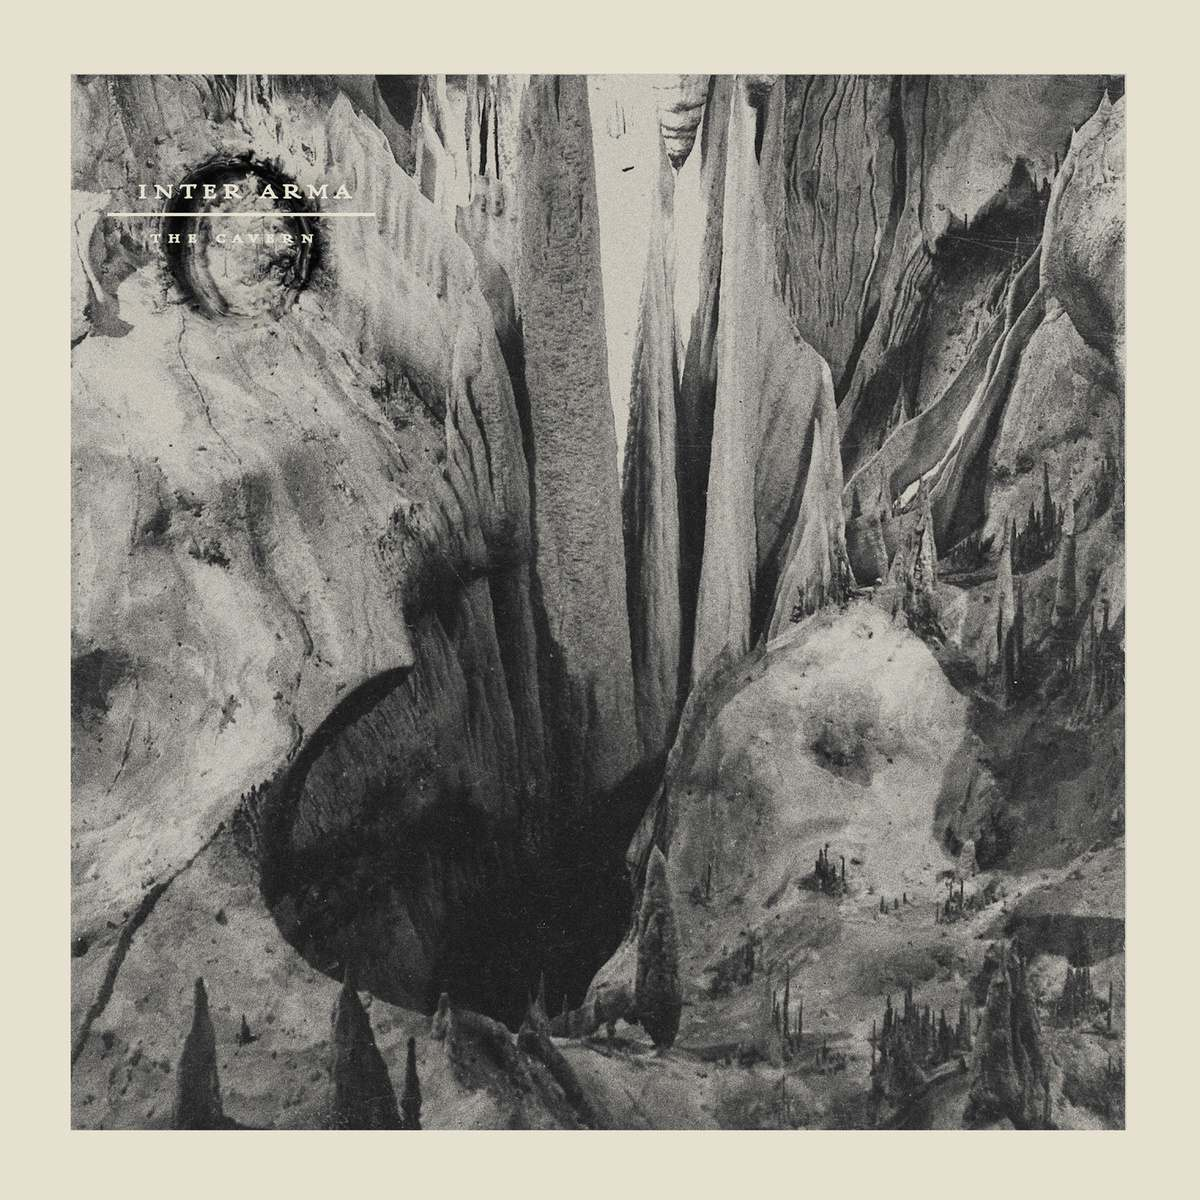 Inter Arma - The Cavern EP